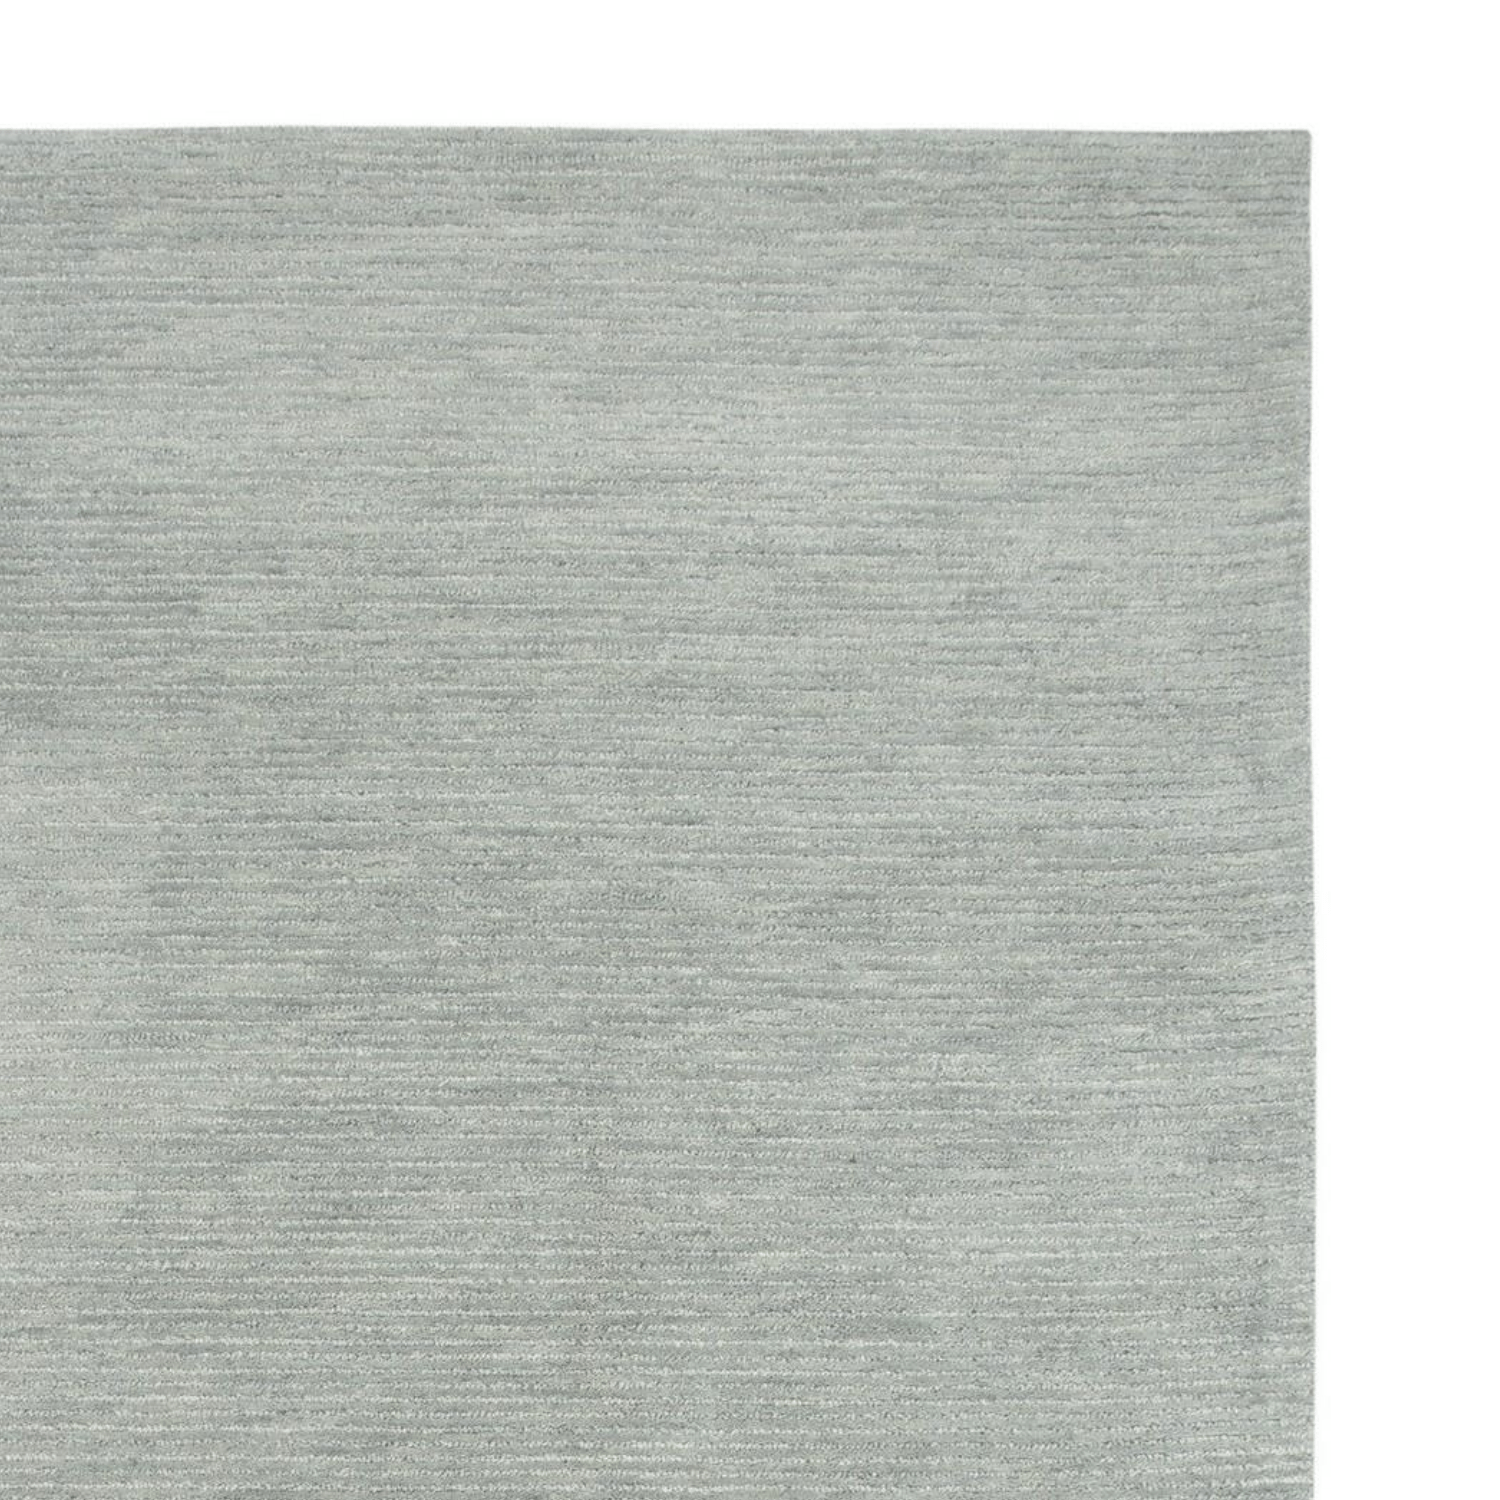 Fifth Avenue Rizzy Home FA150B 100% Wool Neutral Gray Textural Area Rug